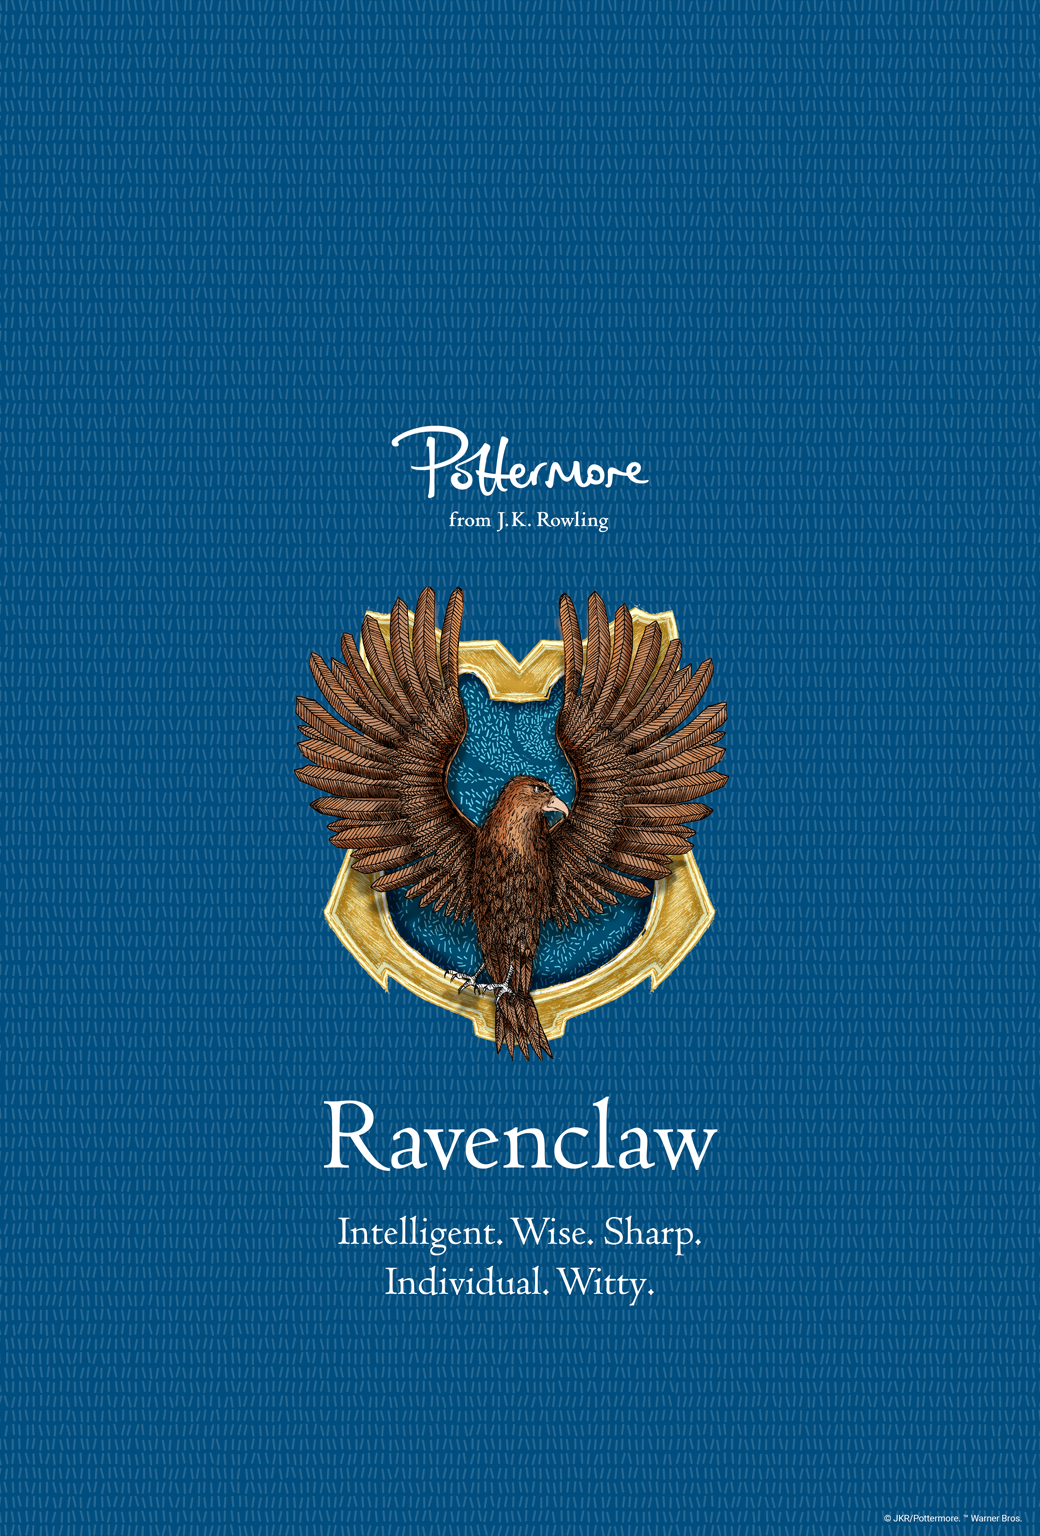 Pm Pride Ravenclaw Iphone Wallpaper 1040 X 1536 Px Png 1040 1536 Ravenclaw Pottermore Ravenclaw Harry Potter Ravenclaw